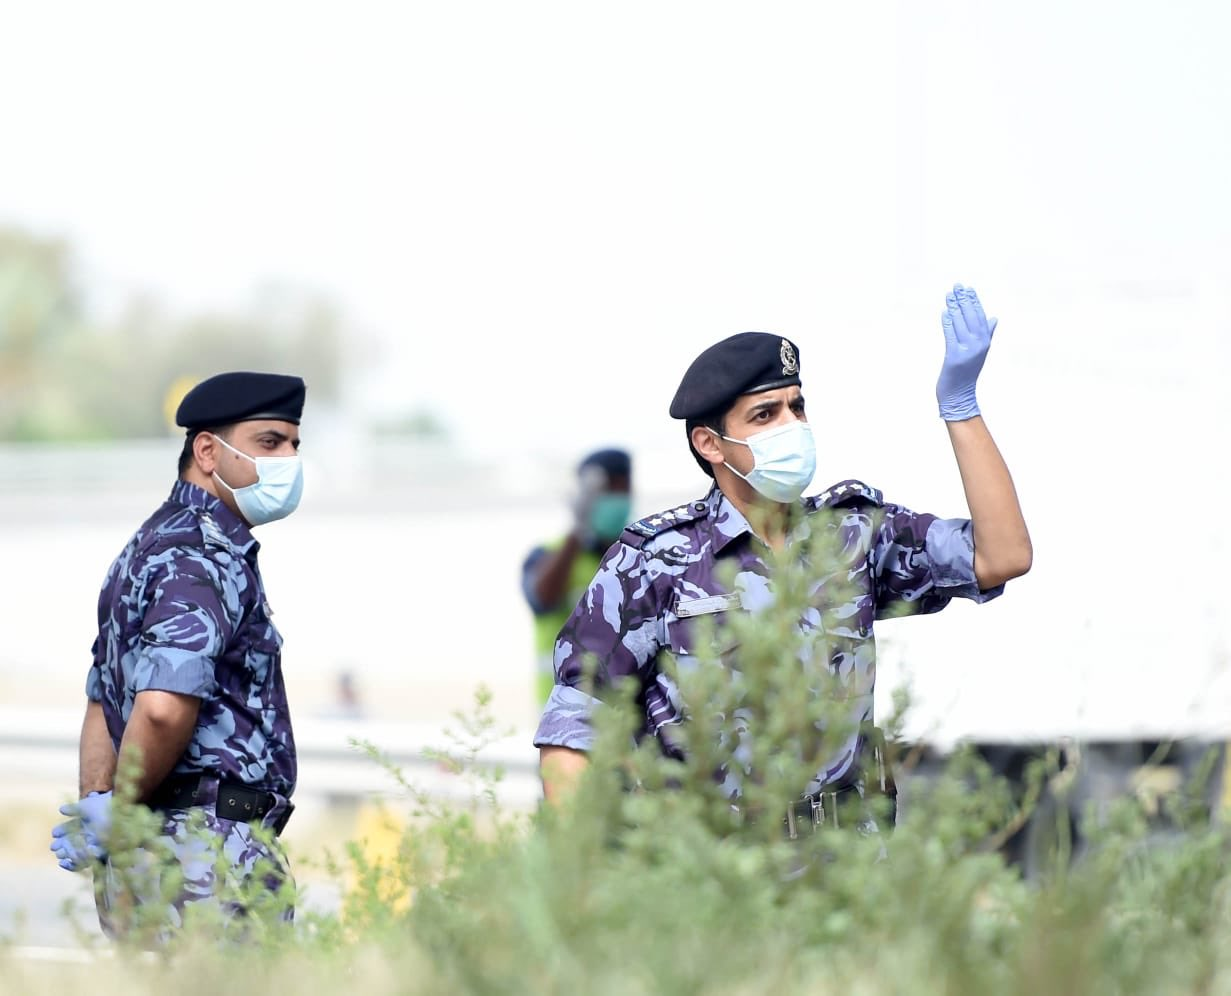 Several persons fined in Oman for not wearing masks